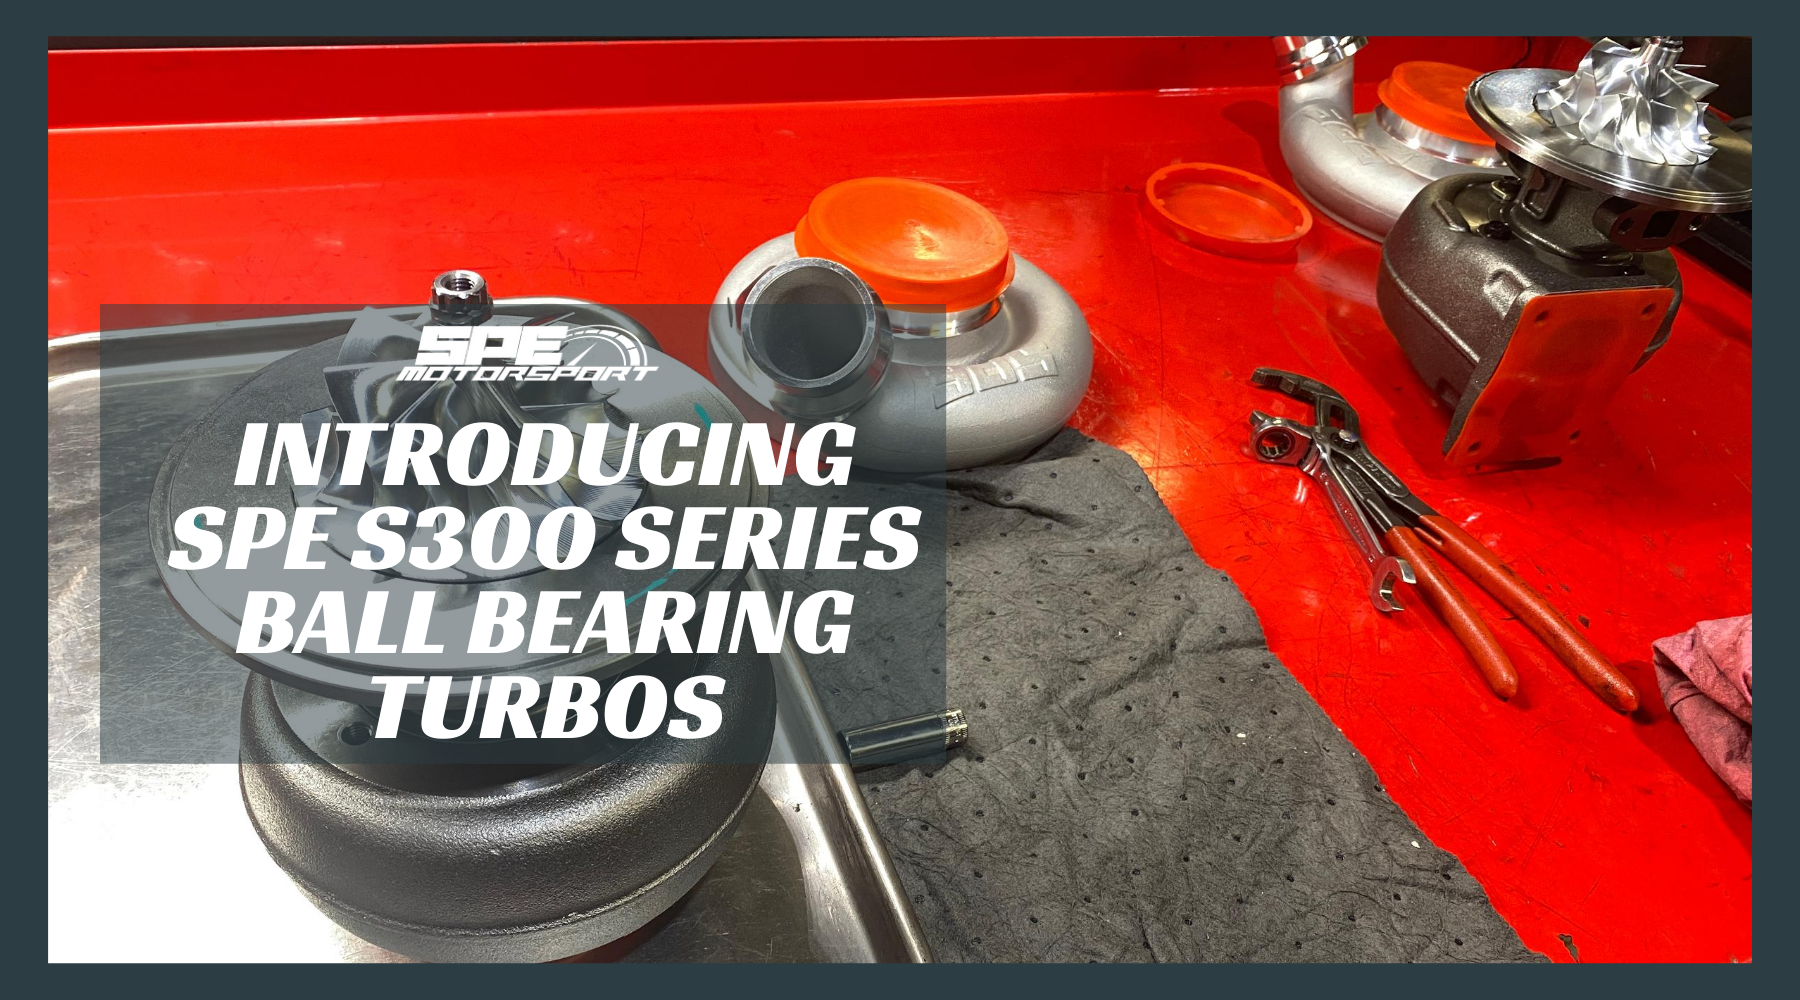 Introducing the SPE S300 Ball Bearing Turbocharger